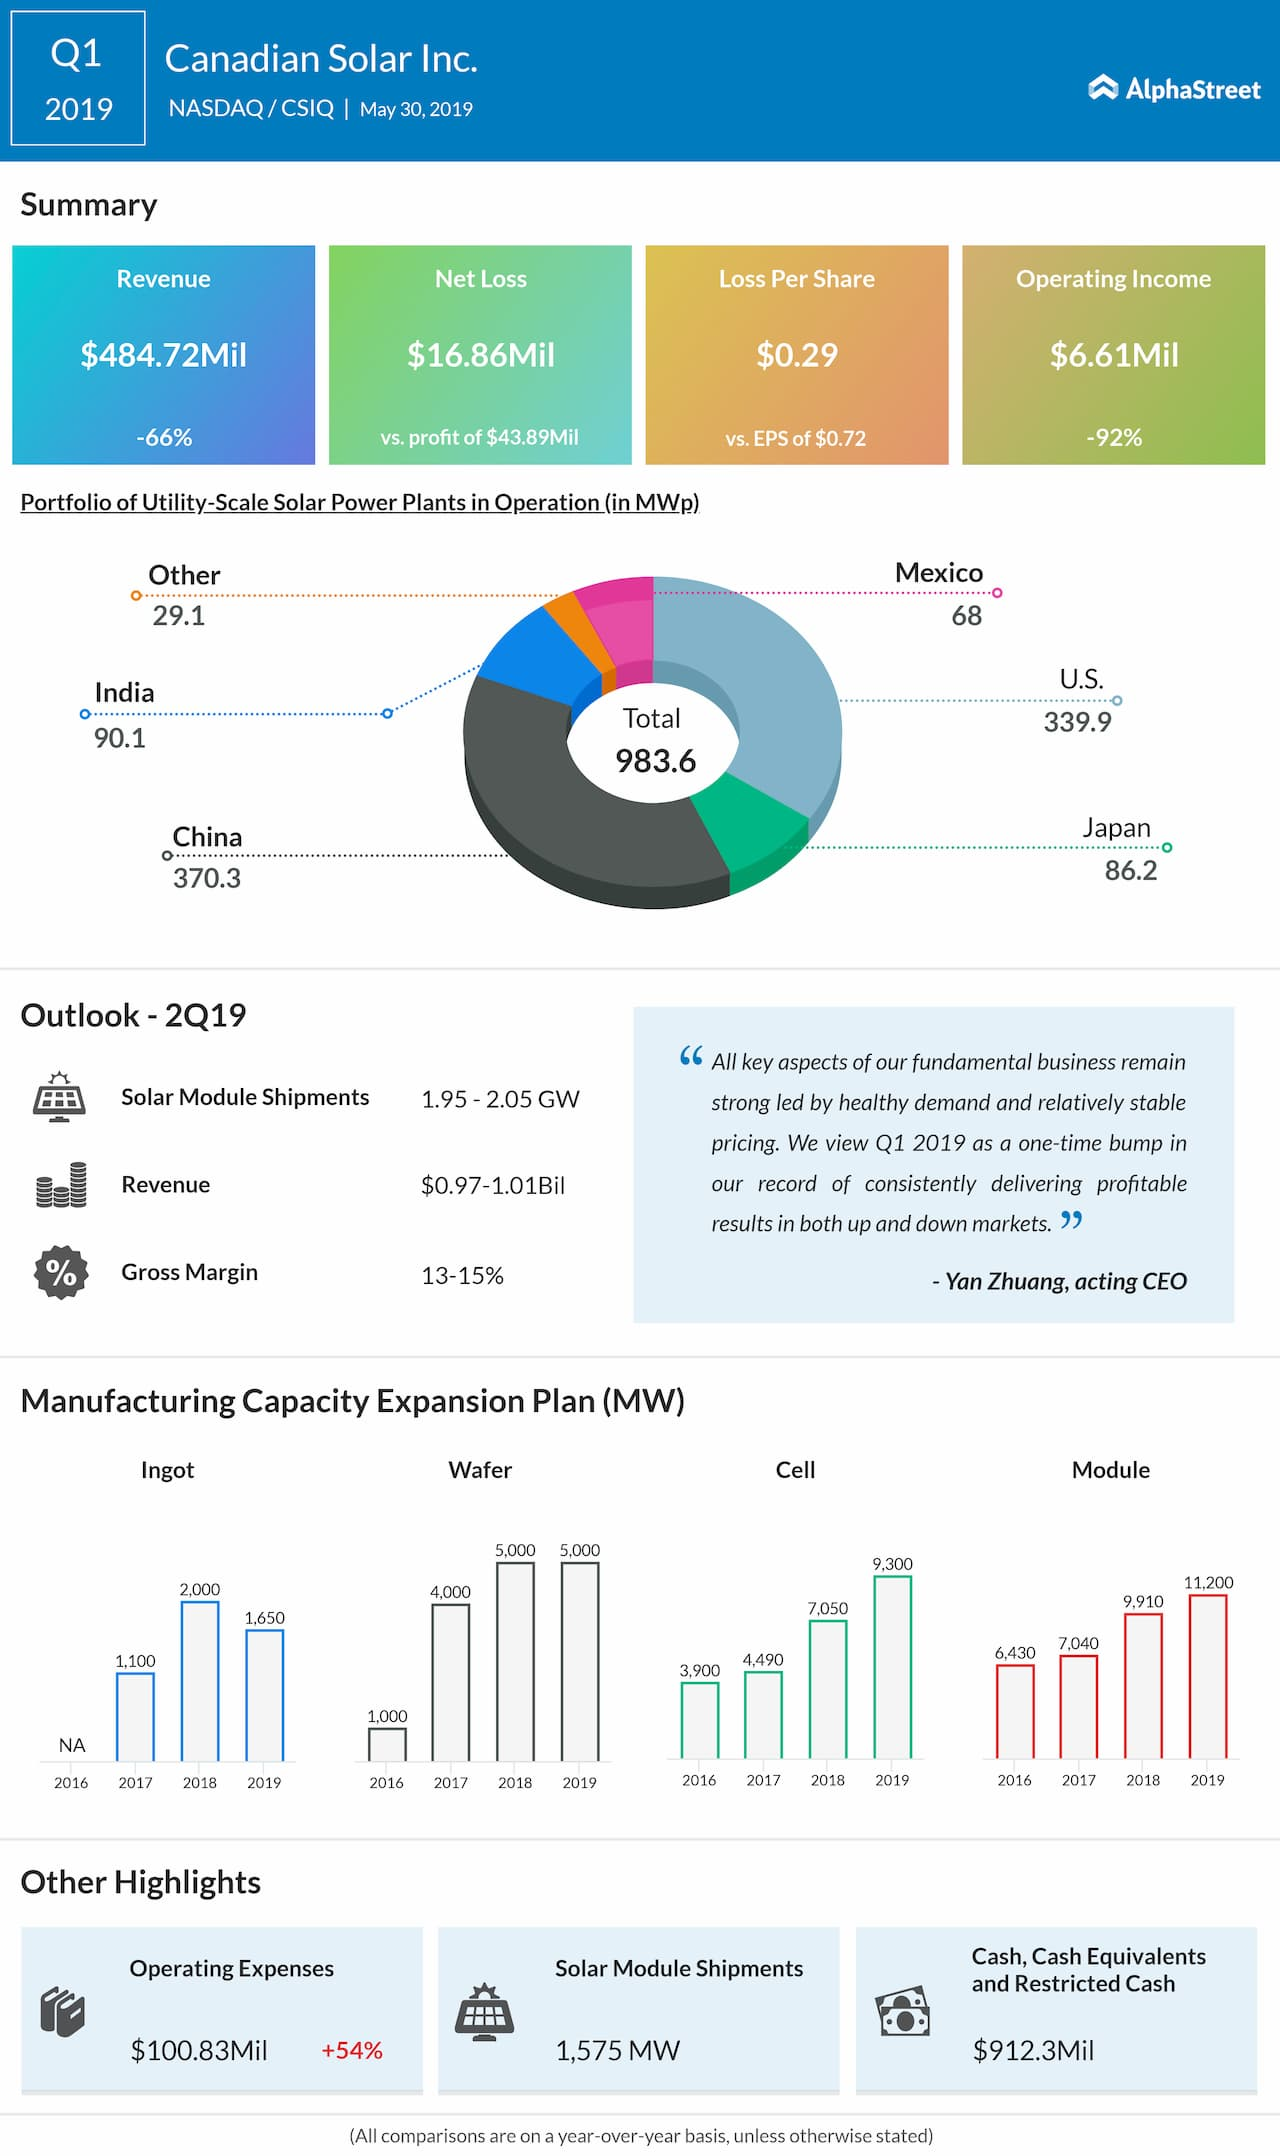 Canadian Solar (CSIQ) first quarter 2019 earnings in graphical format